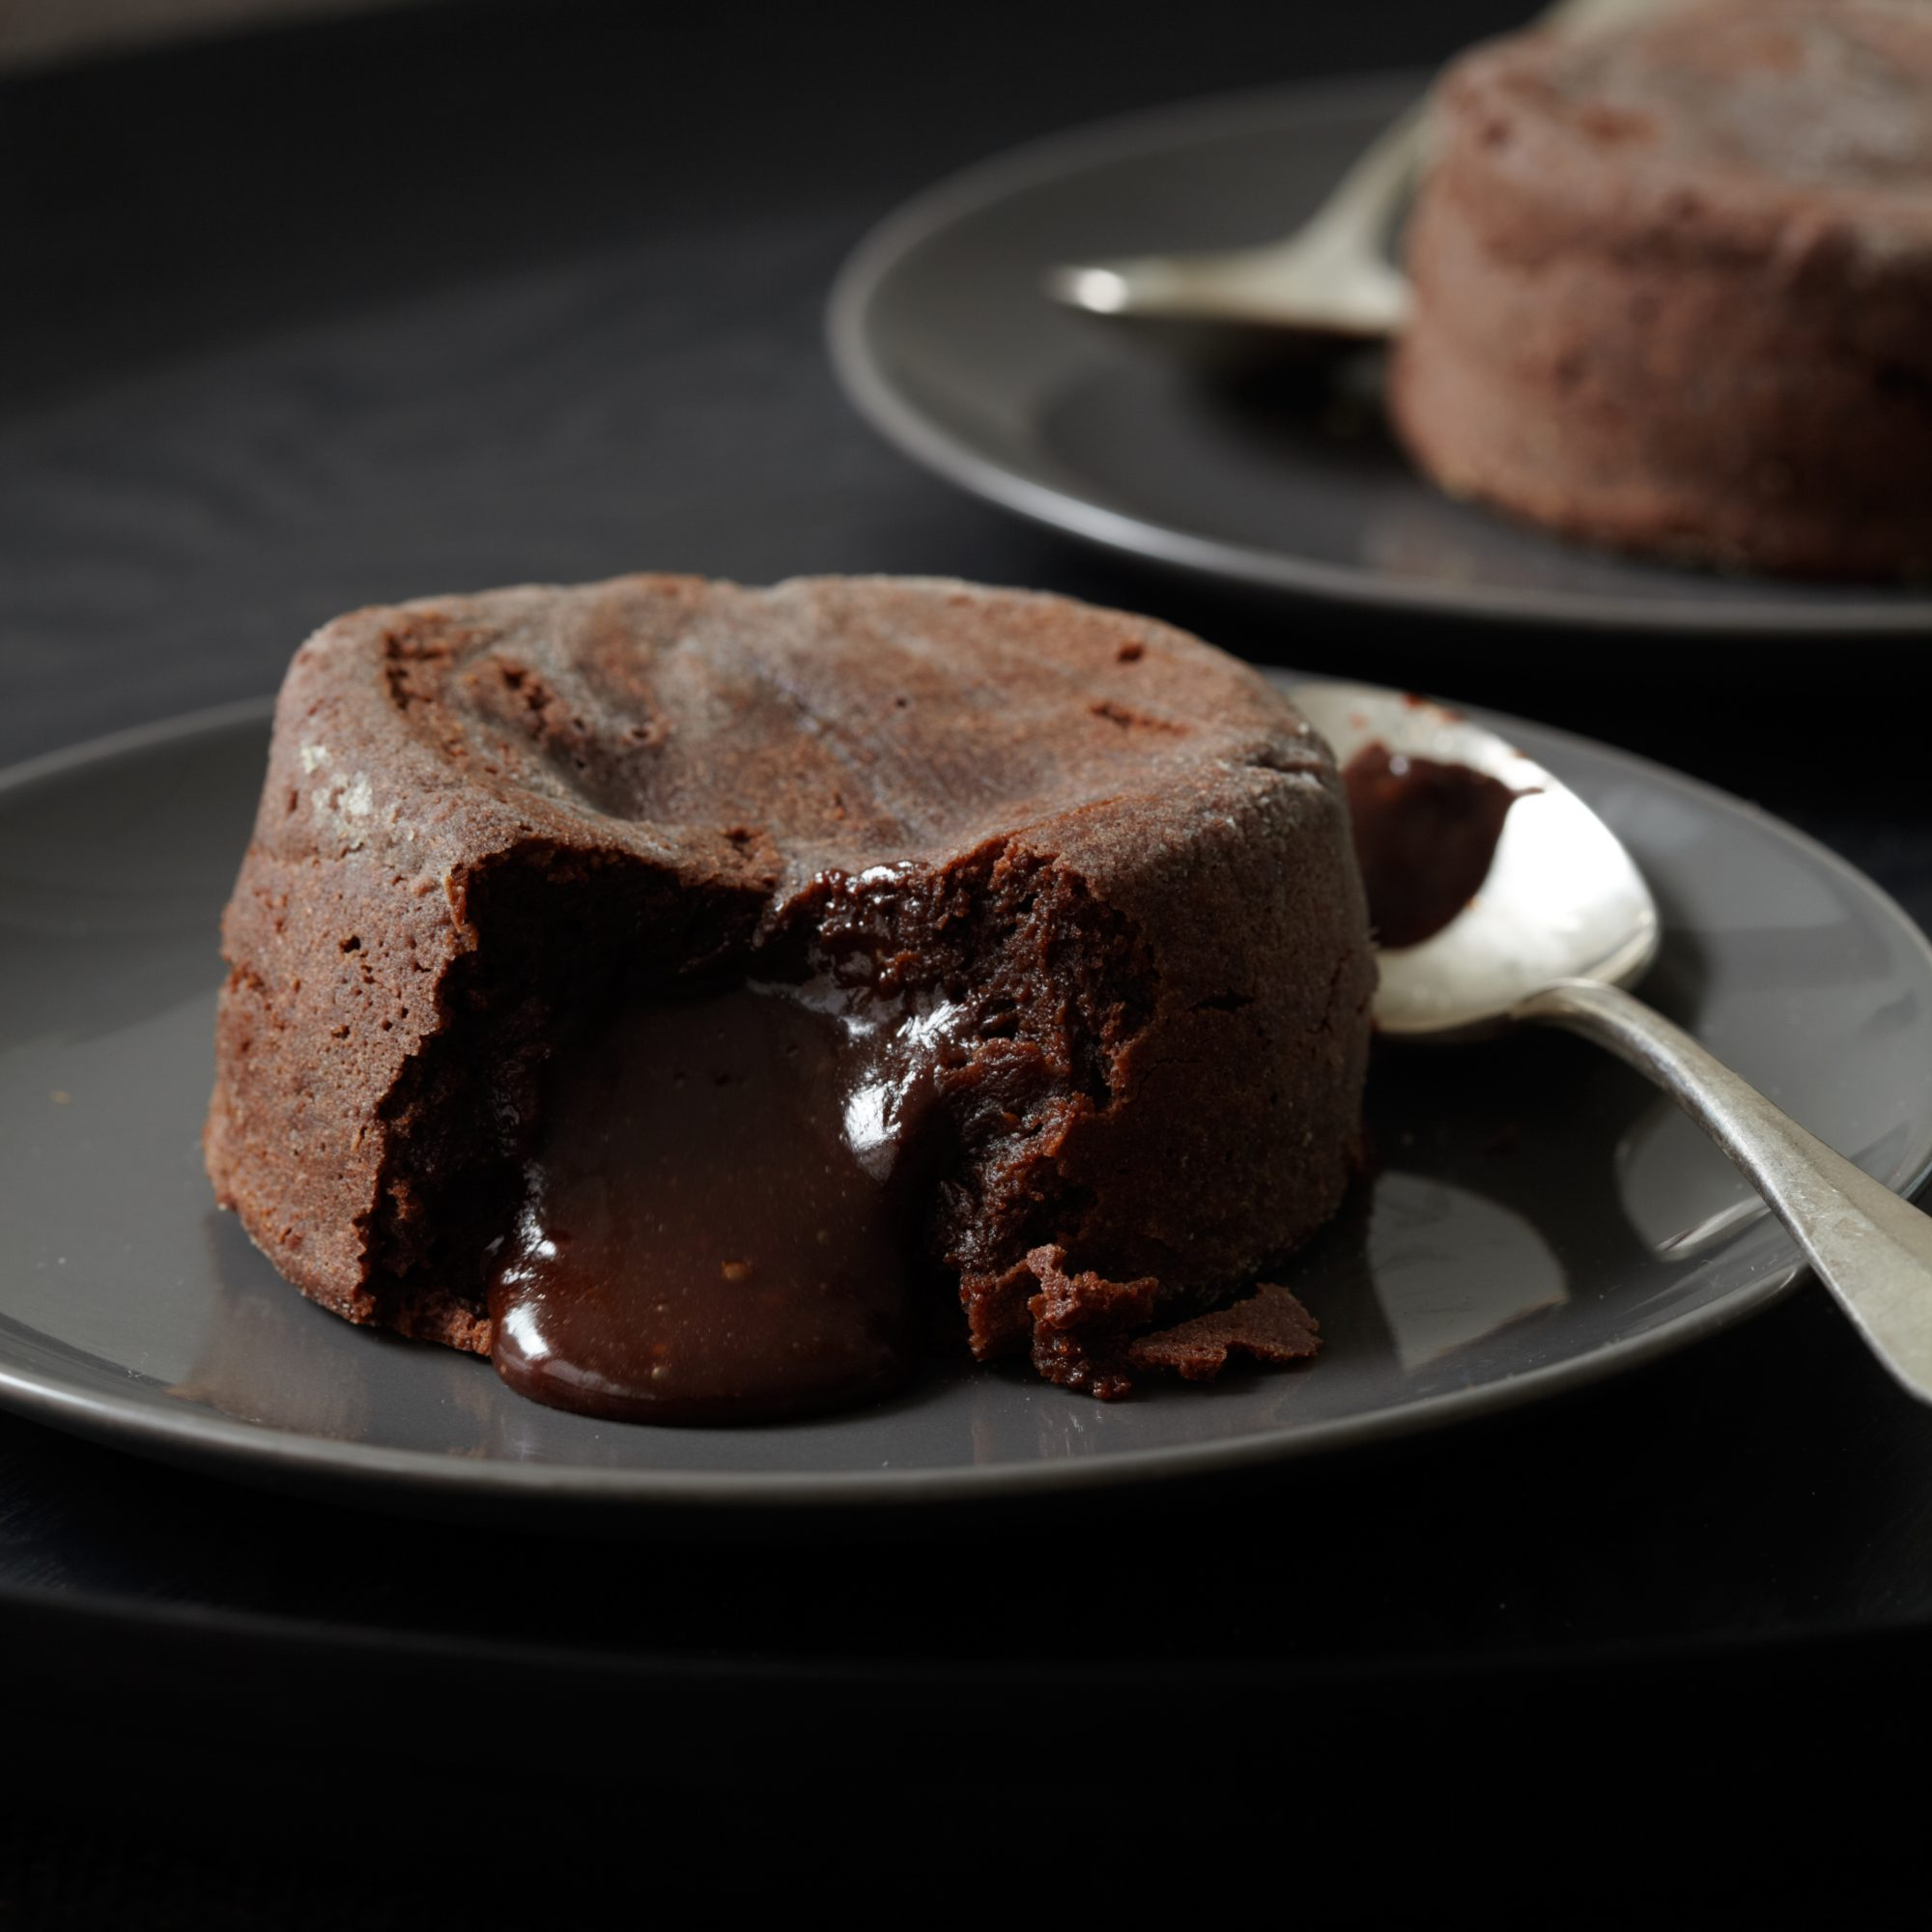 Chocolate Lava Cake Name In French